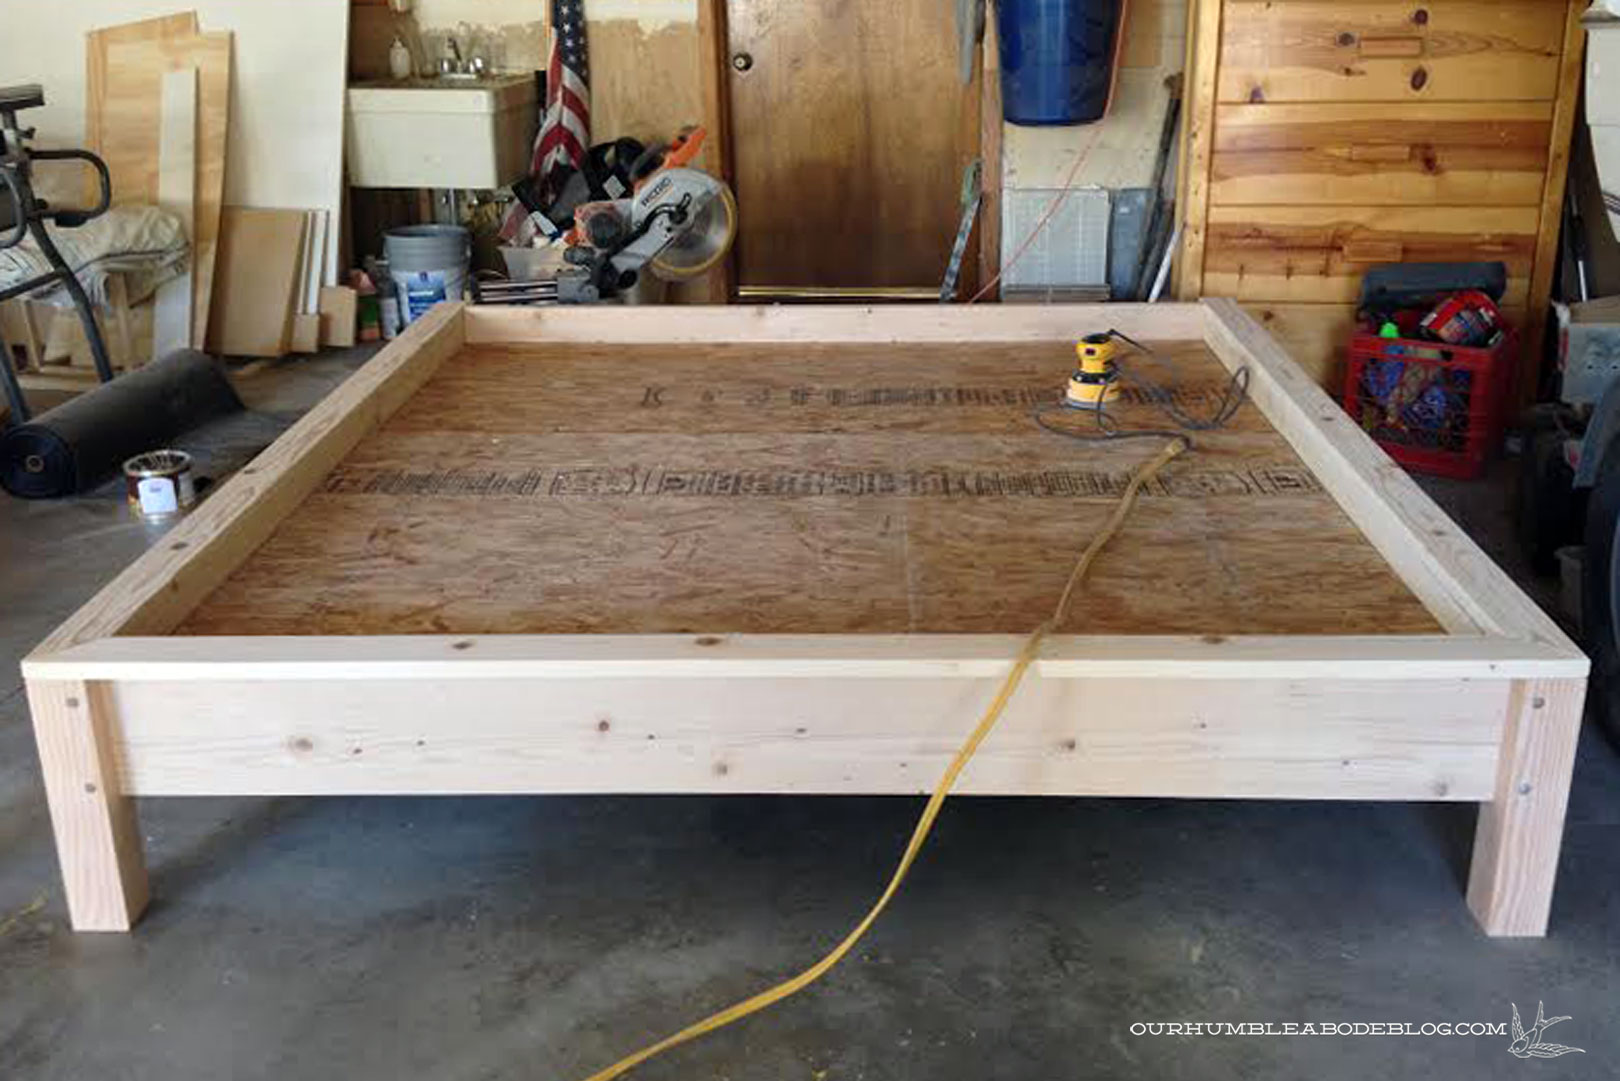 Bed Frame Plans building bed frame assembled in garage build frame ...